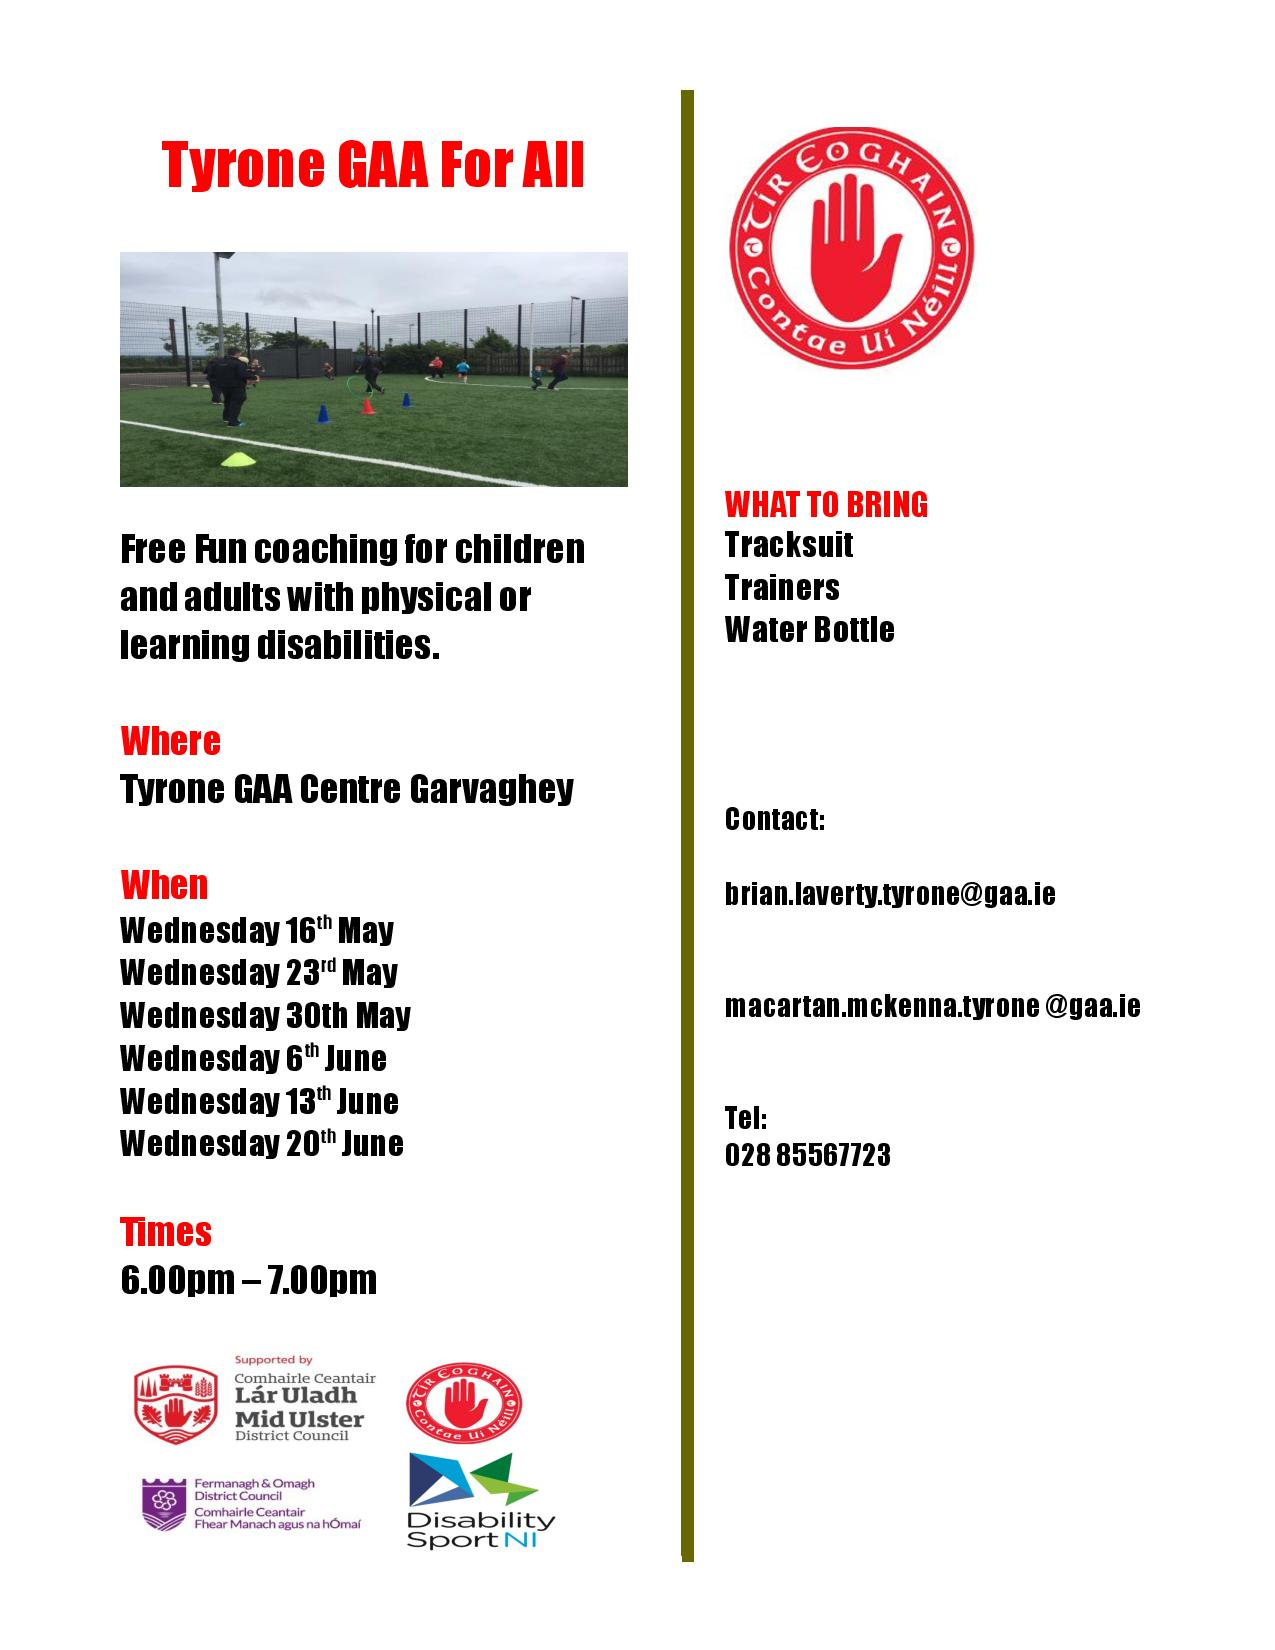 Tyrone GAA for all